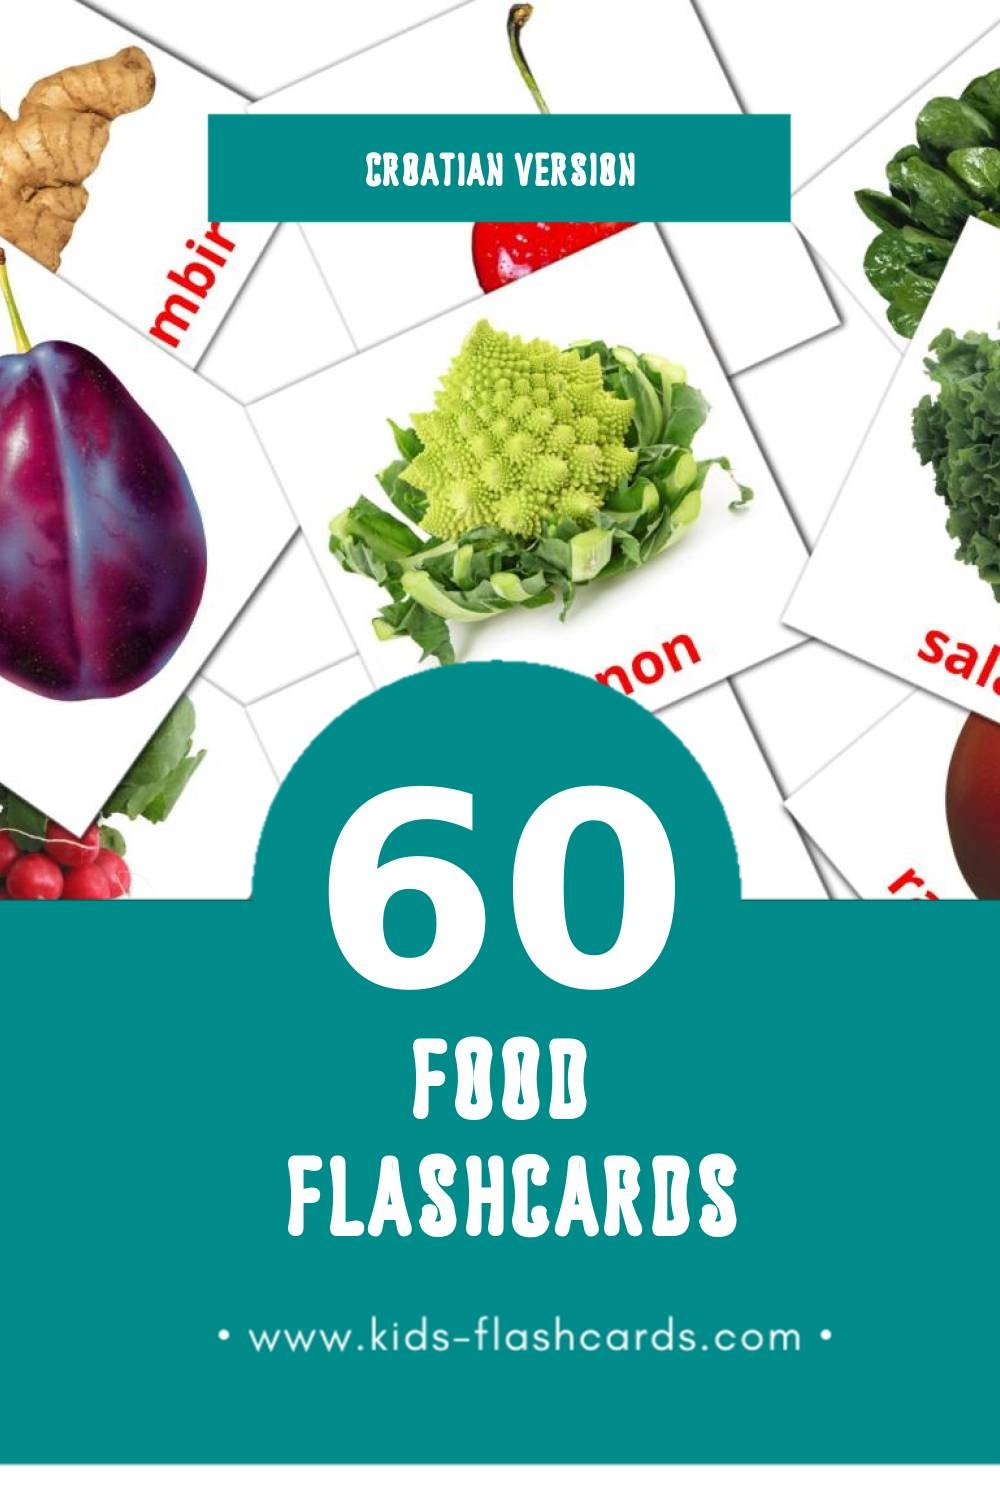 Visual Hrana Flashcards for Toddlers (60 cards in Croatian)